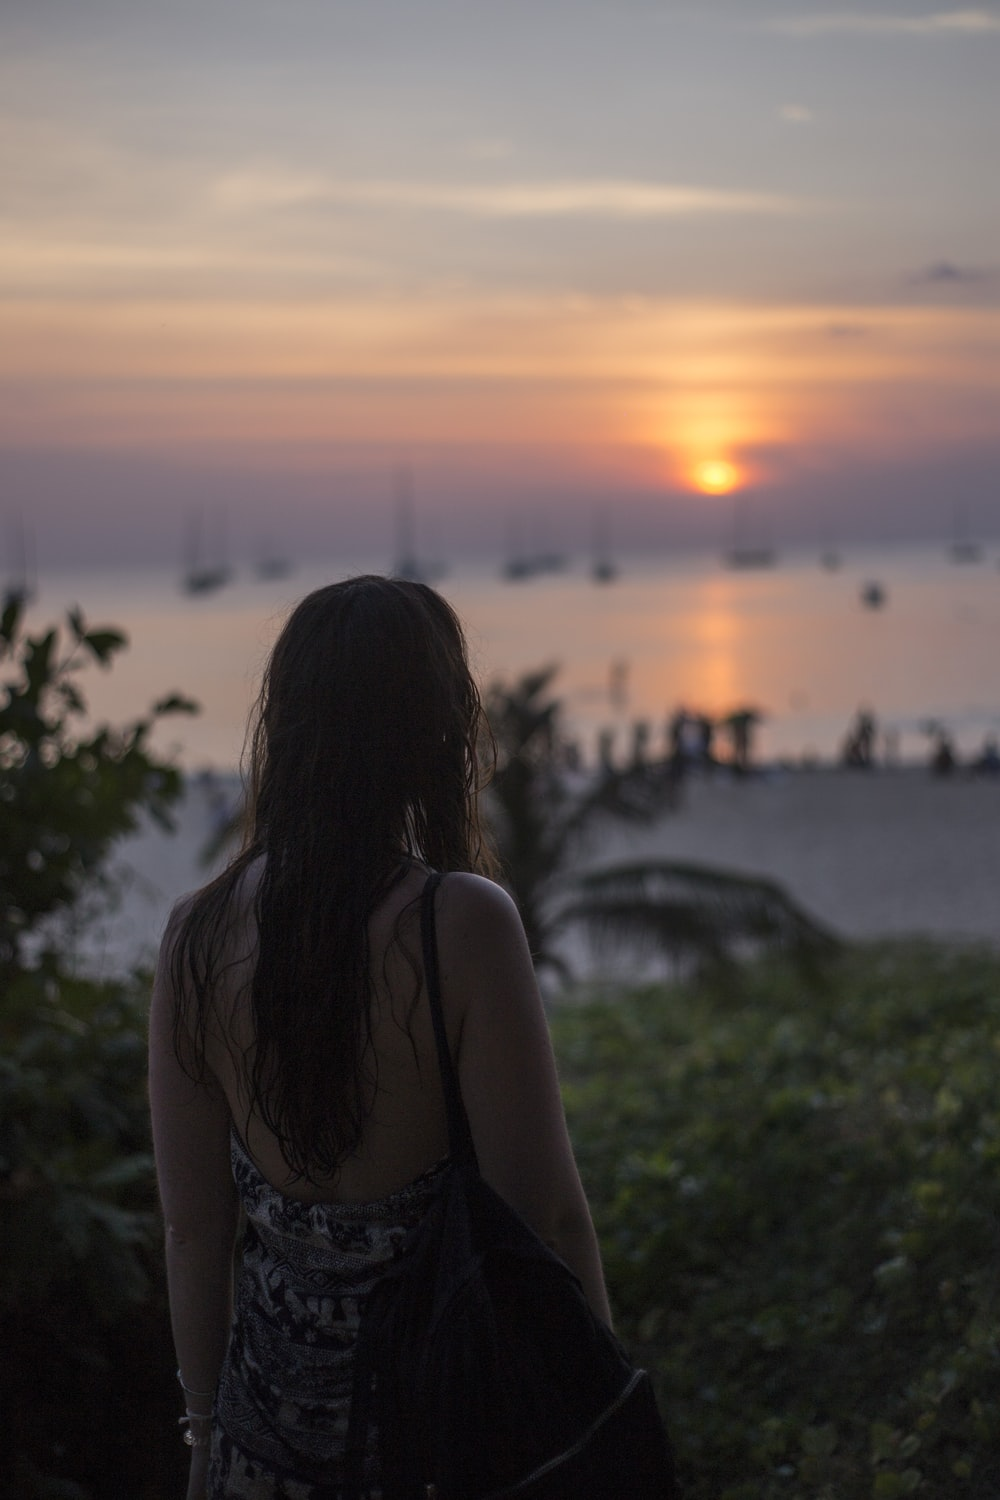 woman in backless top looking into sunset